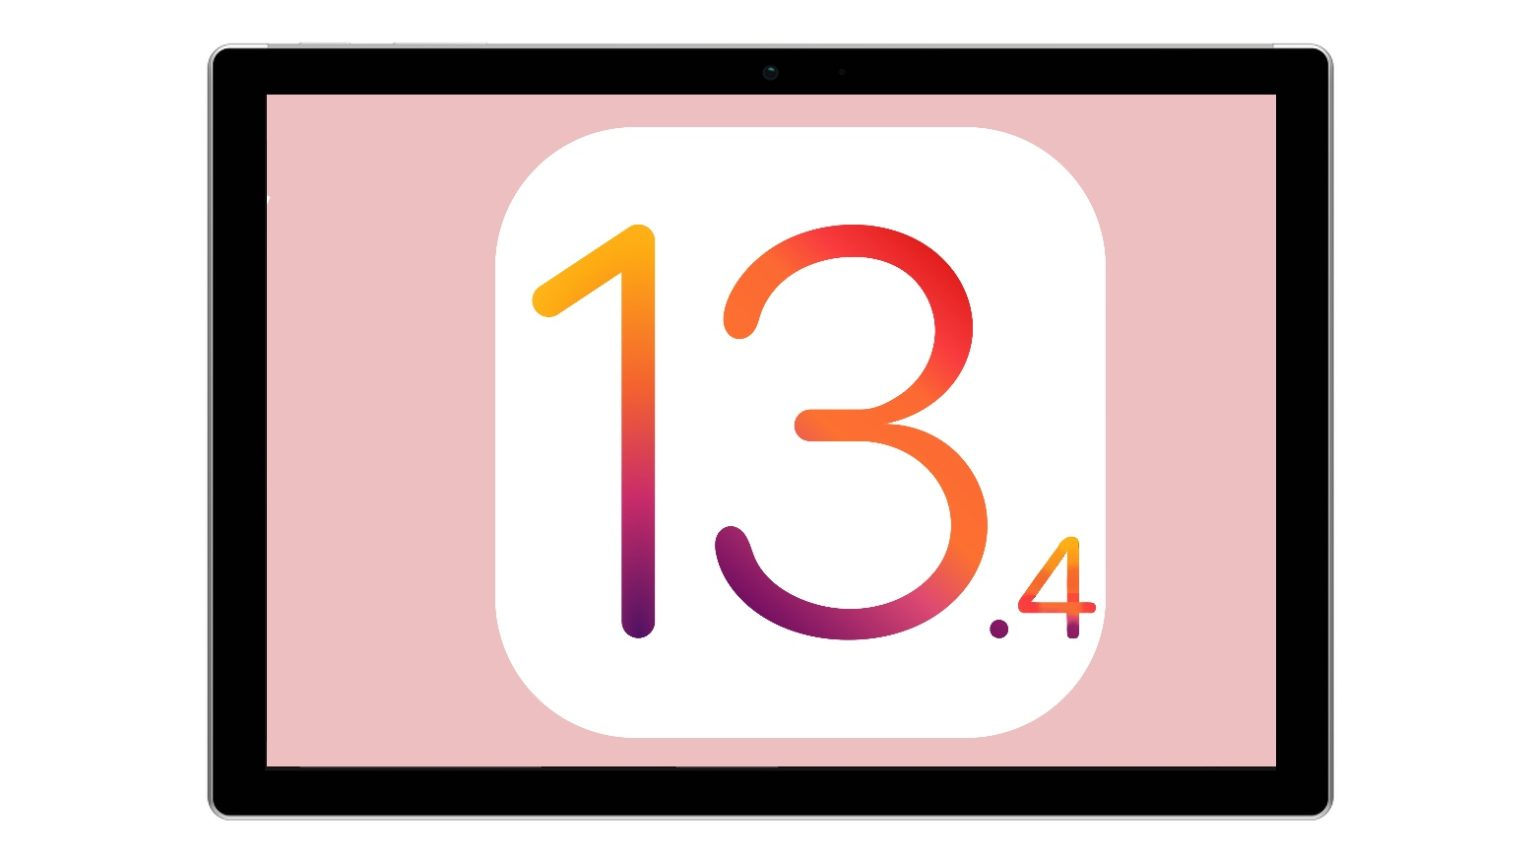 iPadOS 13.4 is headed for iPad Pro and other tablets